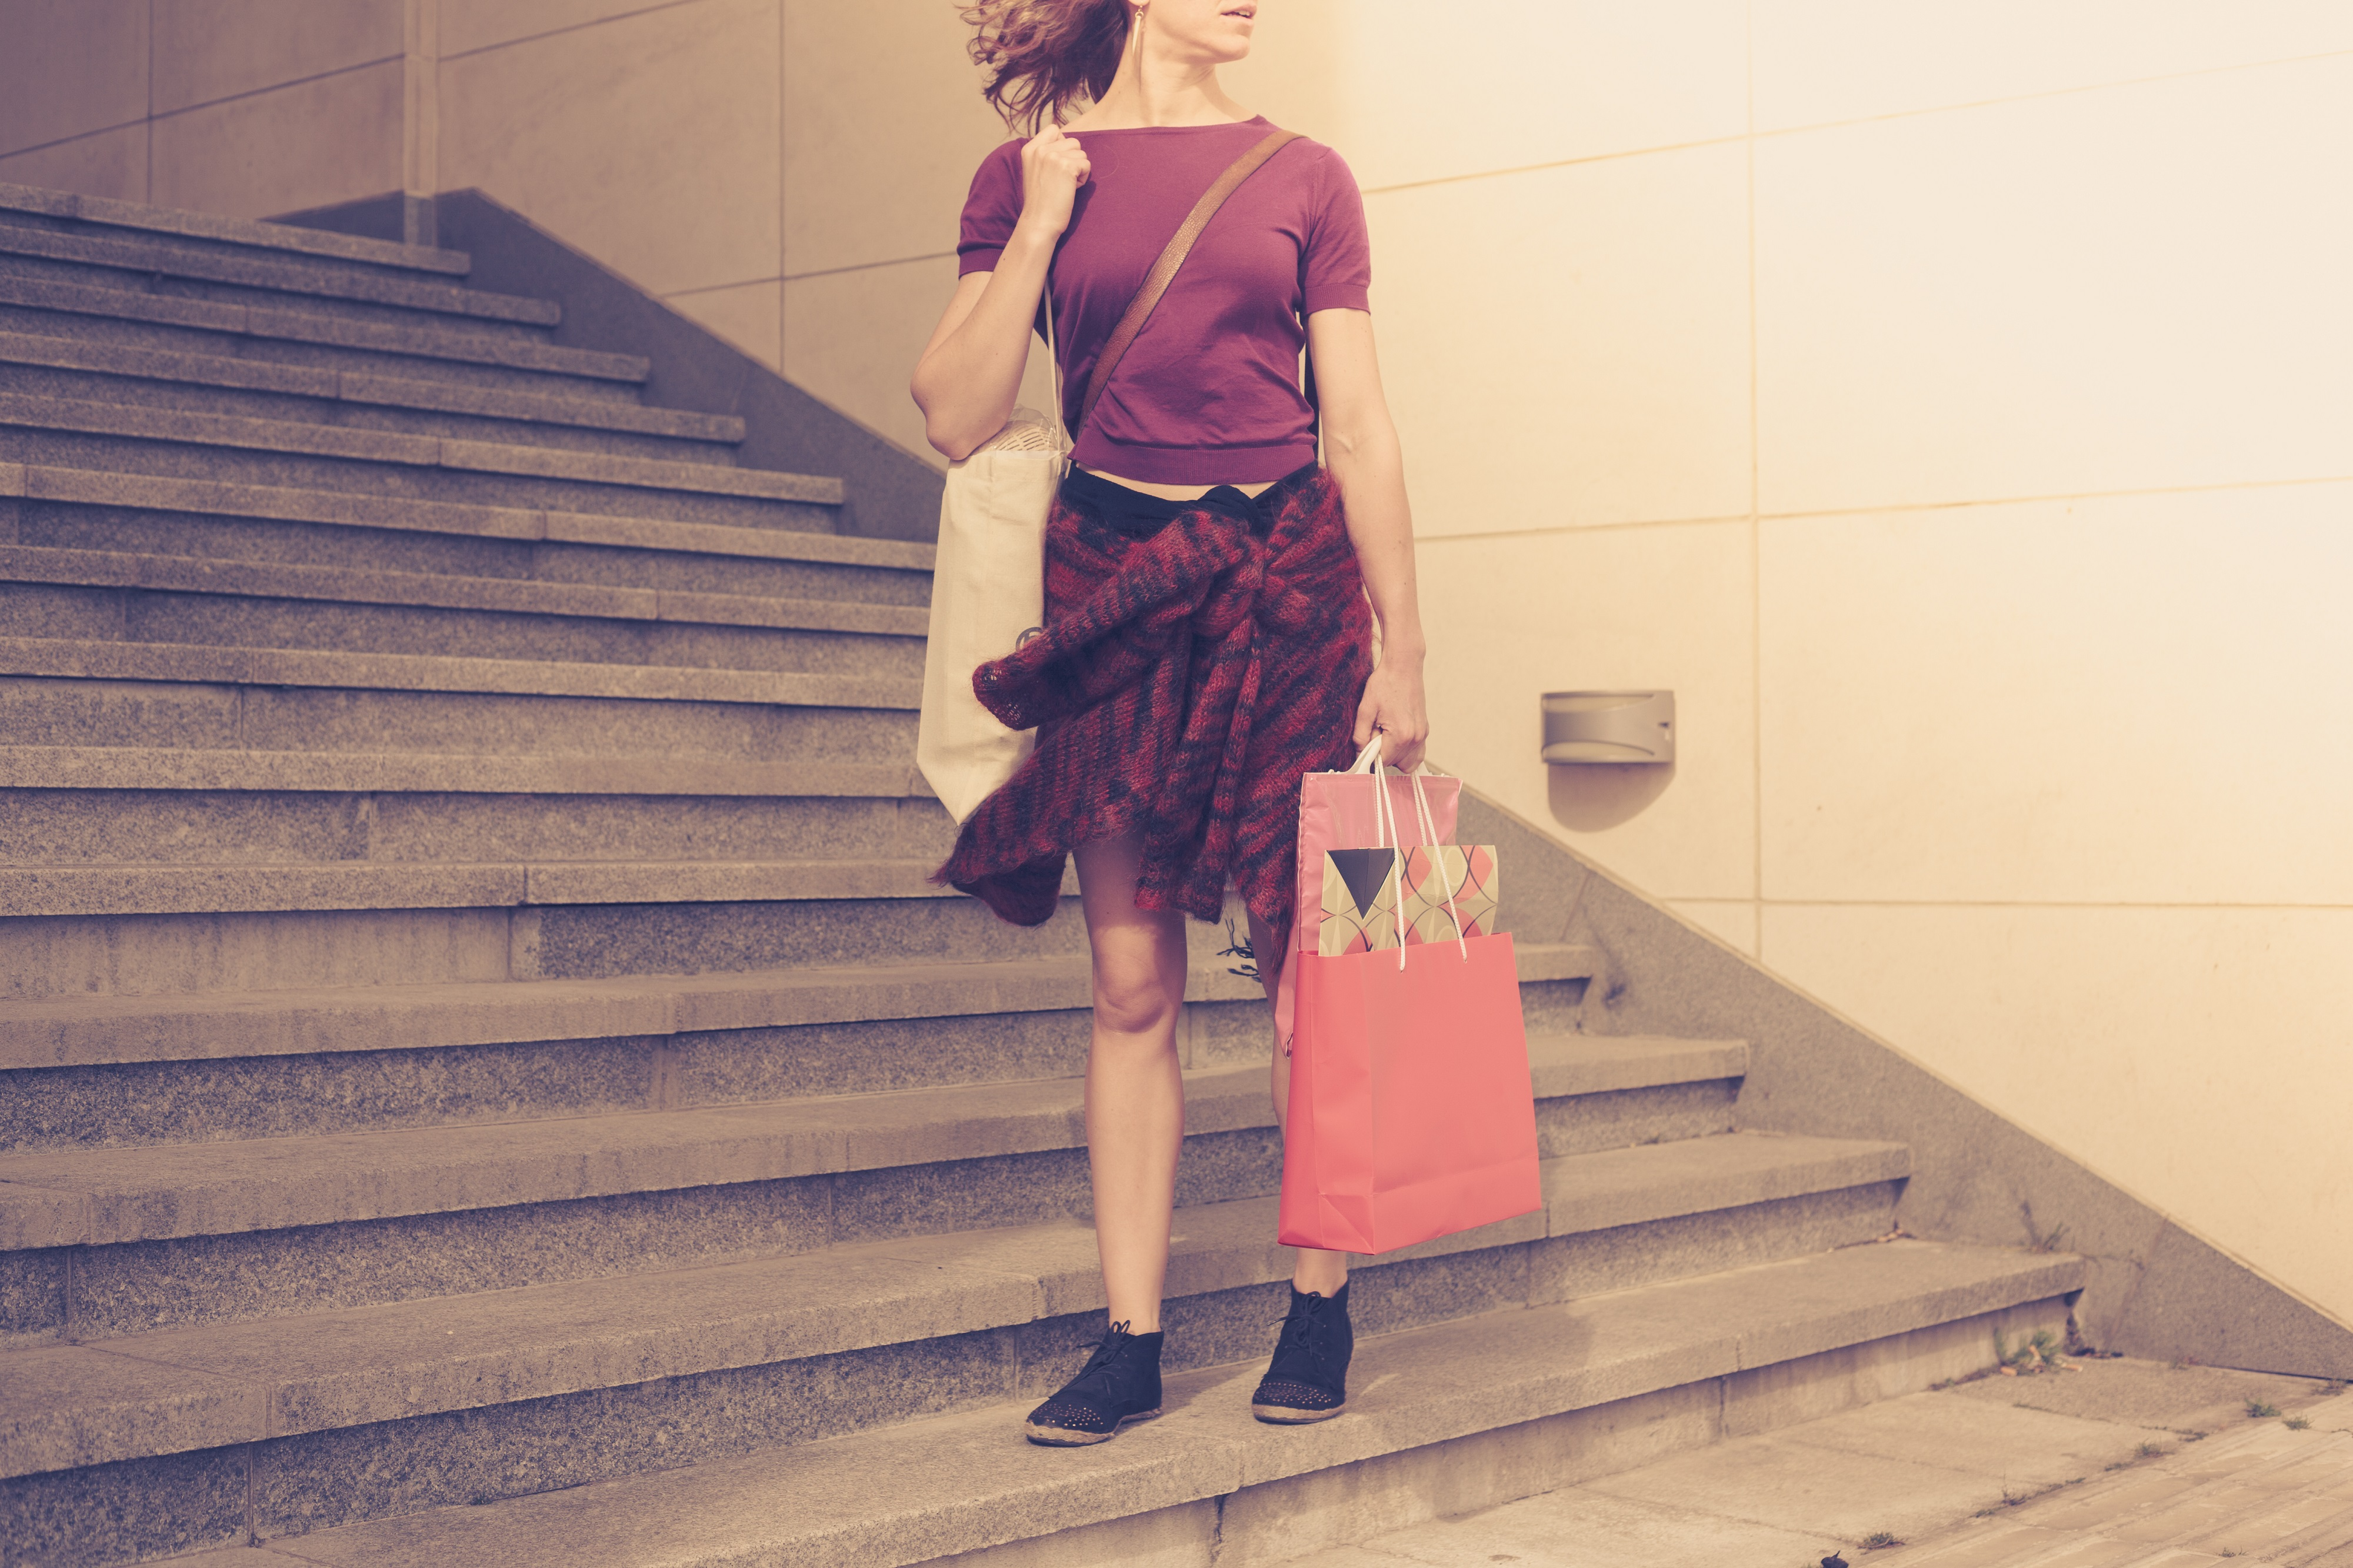 A young woman with shopping bags is standing by some stairs outside at sunset